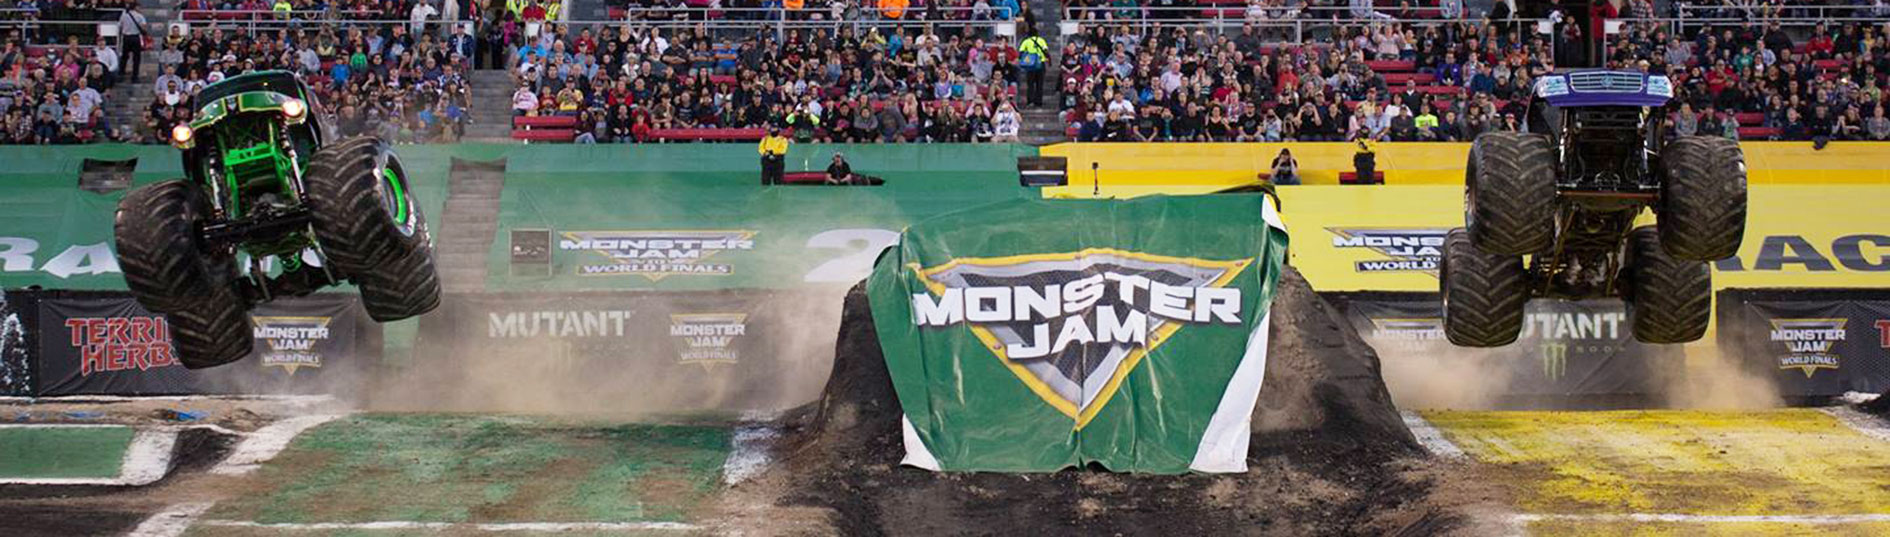 Trucks-at-Monster-Jam-Team-FVP-Events-&-Activation-Banner-Image.jpg